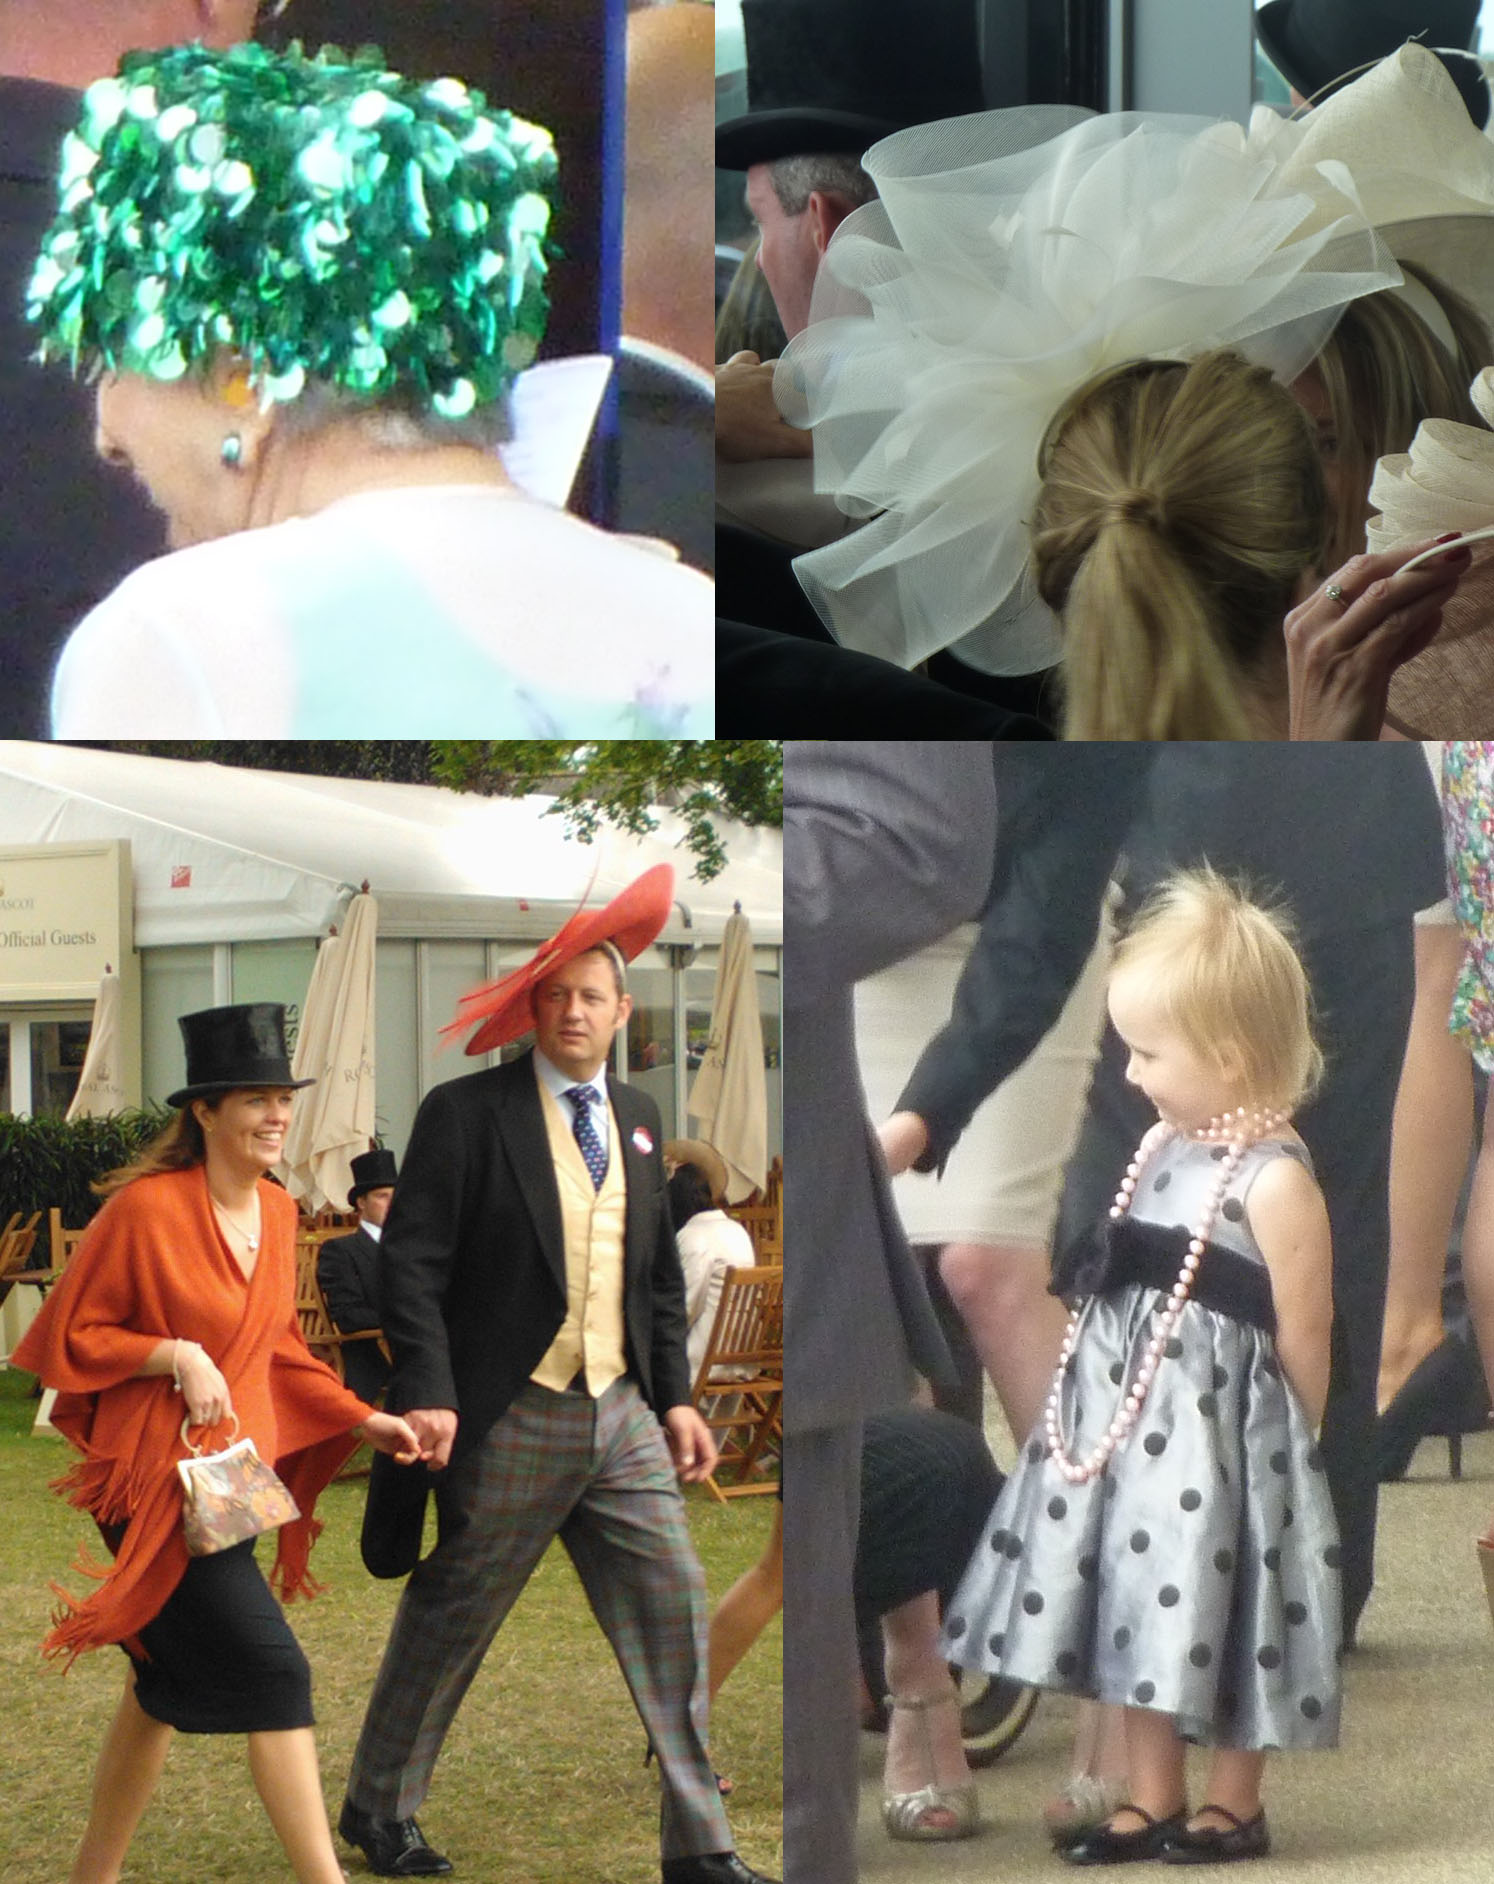 Clockwise from top left: a lady in sparkly shower cap-like millinery; crinoline overload; they start them early!; hat swap at the end of the day.